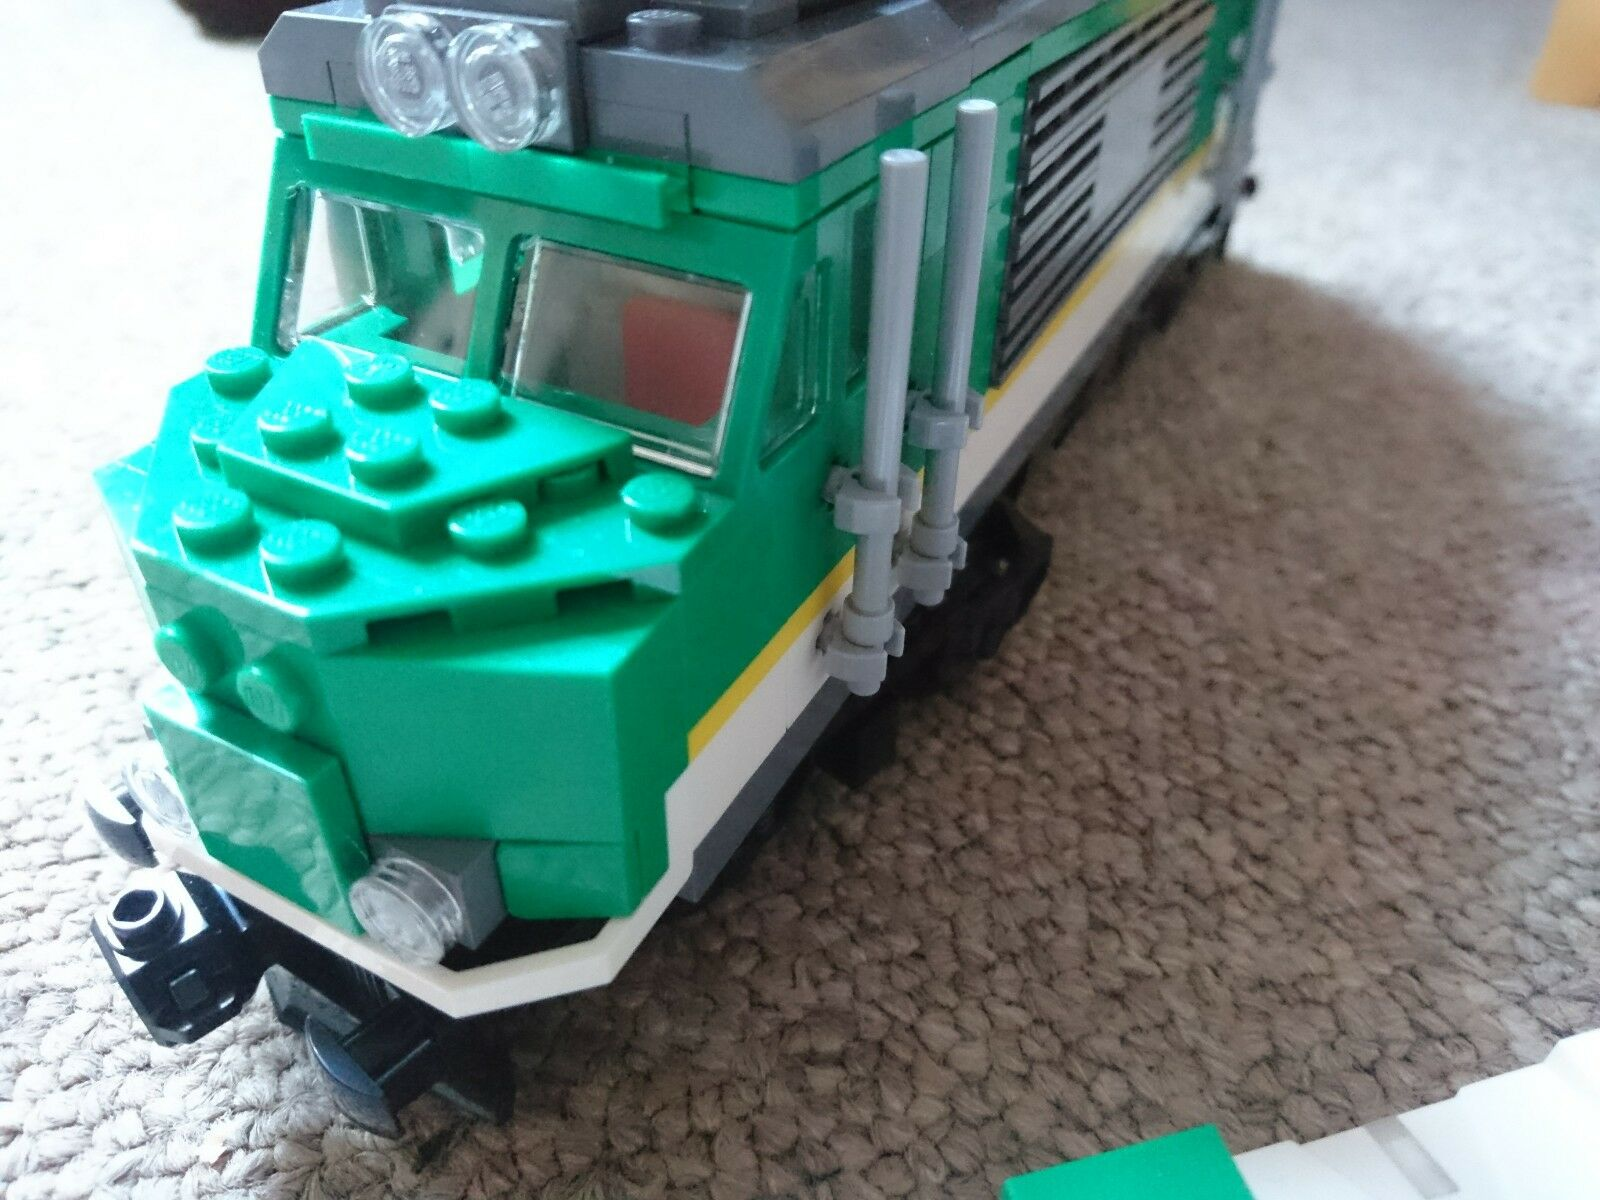 Lego train 60198 Locomotive mint condition powerot up Blautooth